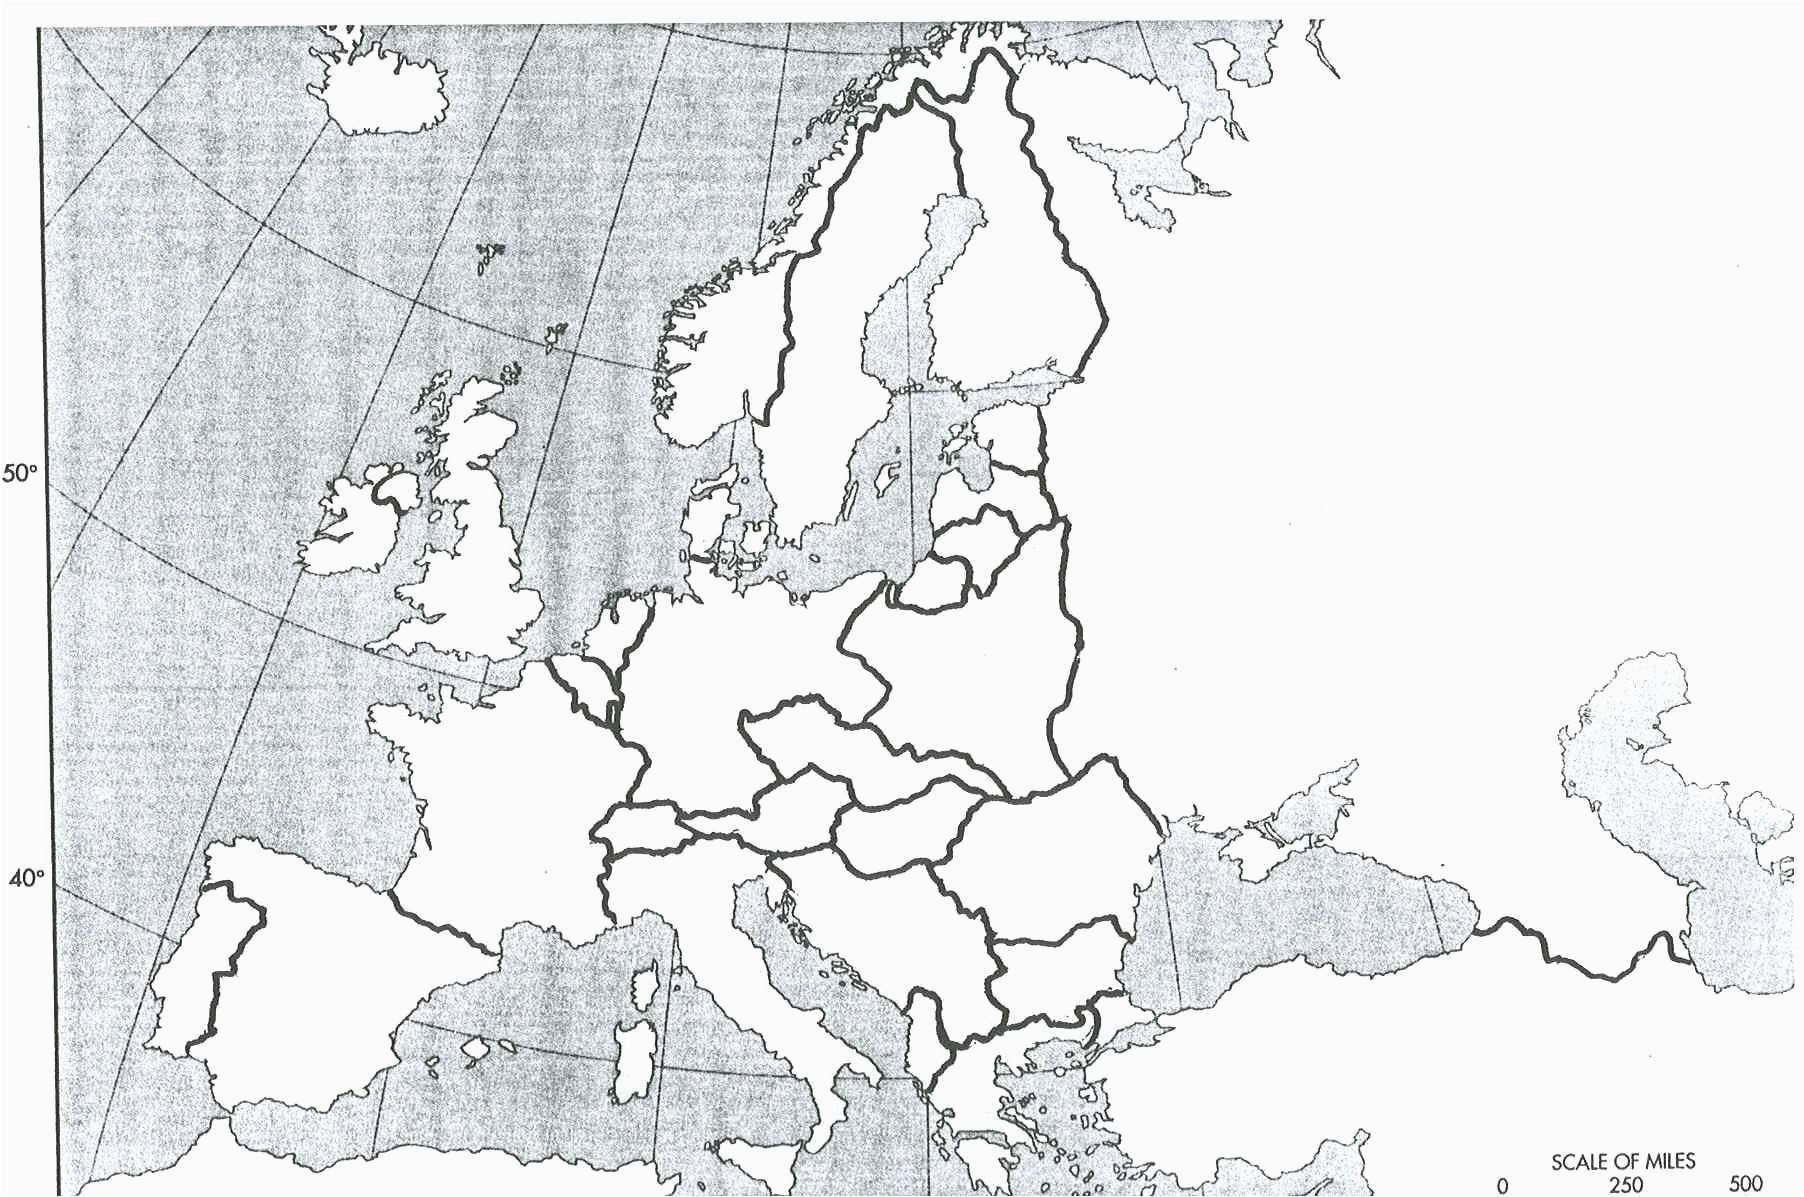 Description for Maps the World Black and White Free Downloads Europe In World War asia Europe Map Maps the World Black and White Free Downloads Europe In